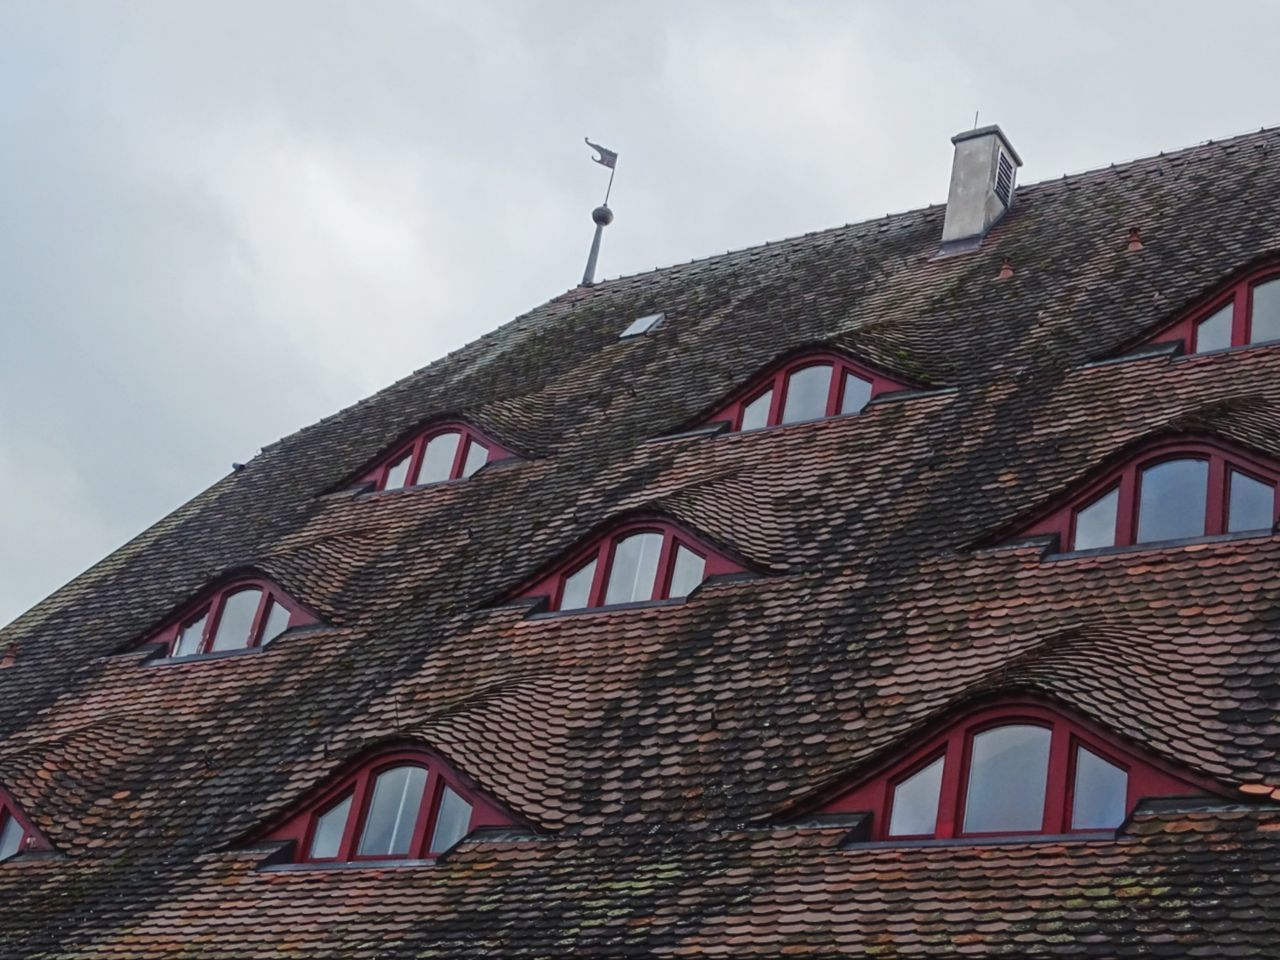 LOW ANGLE VIEW OF HOUSE ROOF